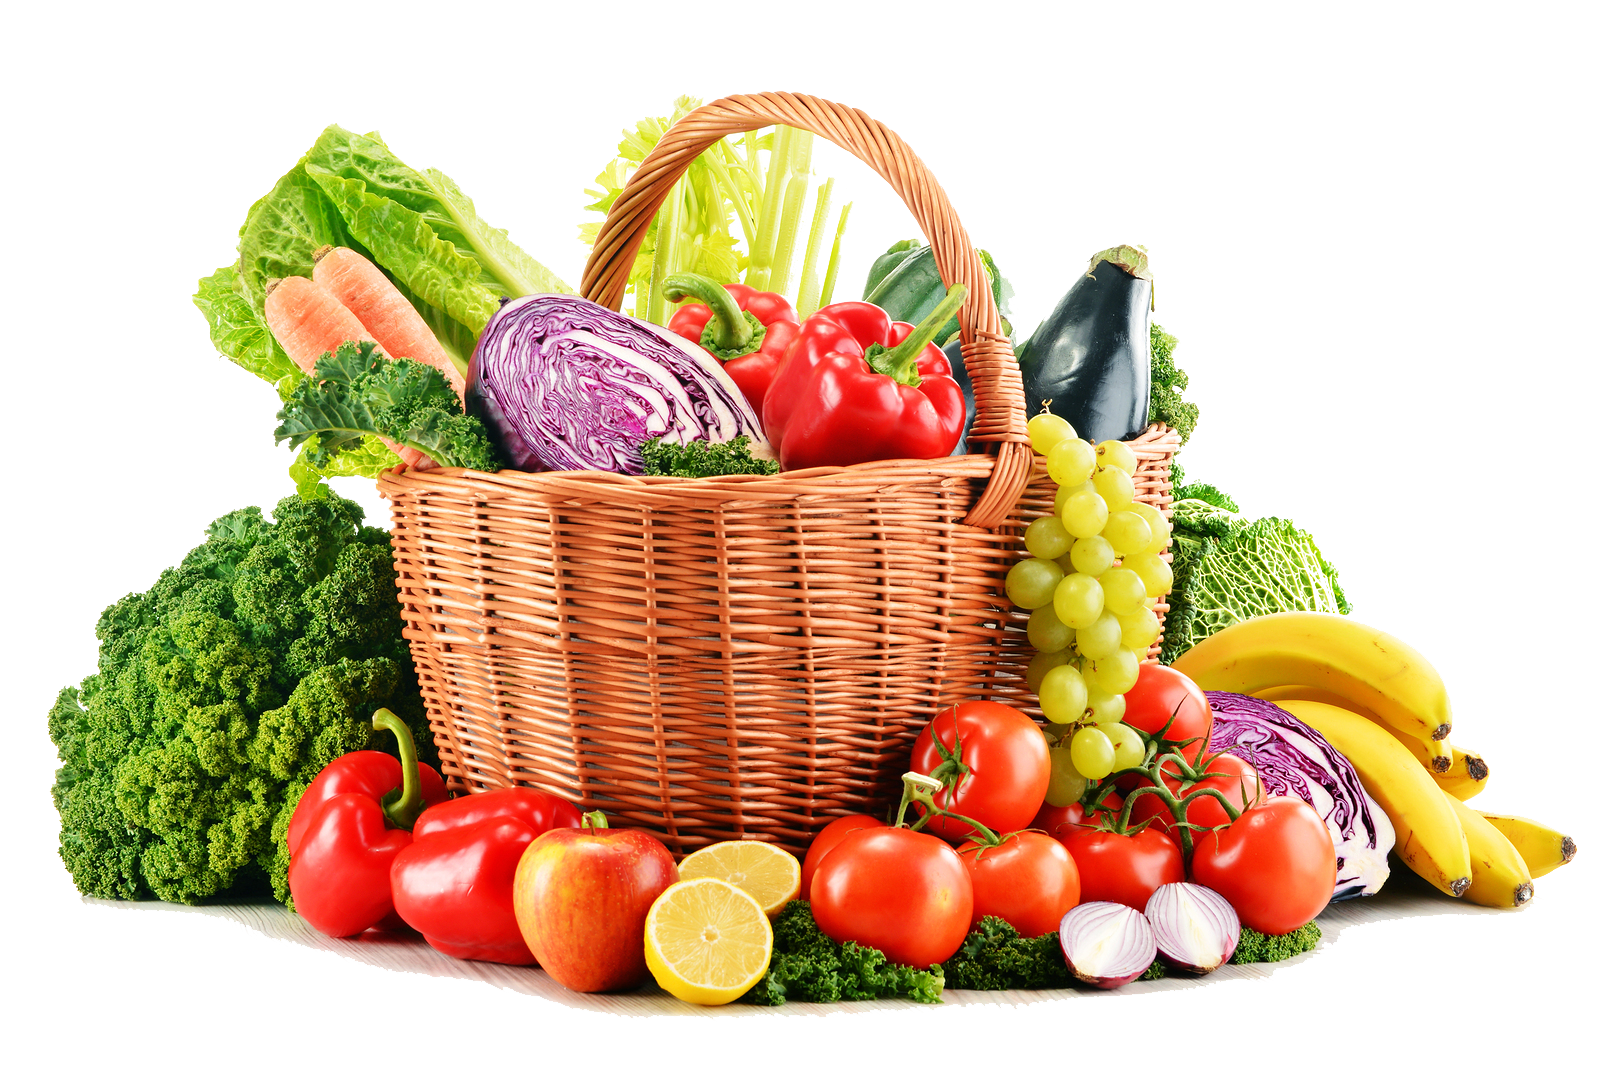 Download Vegetable PNG Photos.